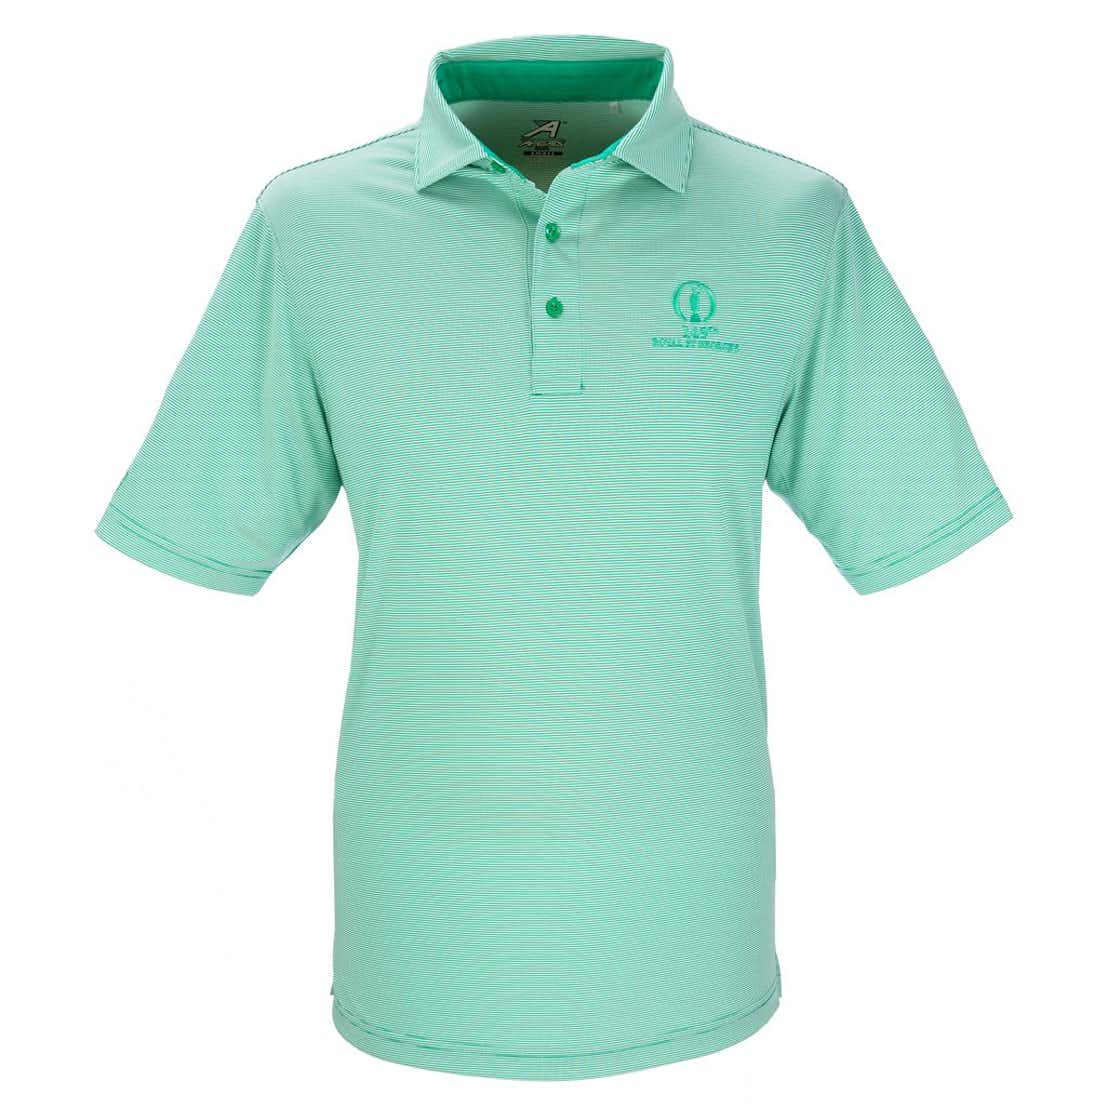 149th Royal St George's Ahead Striped Polo - Green